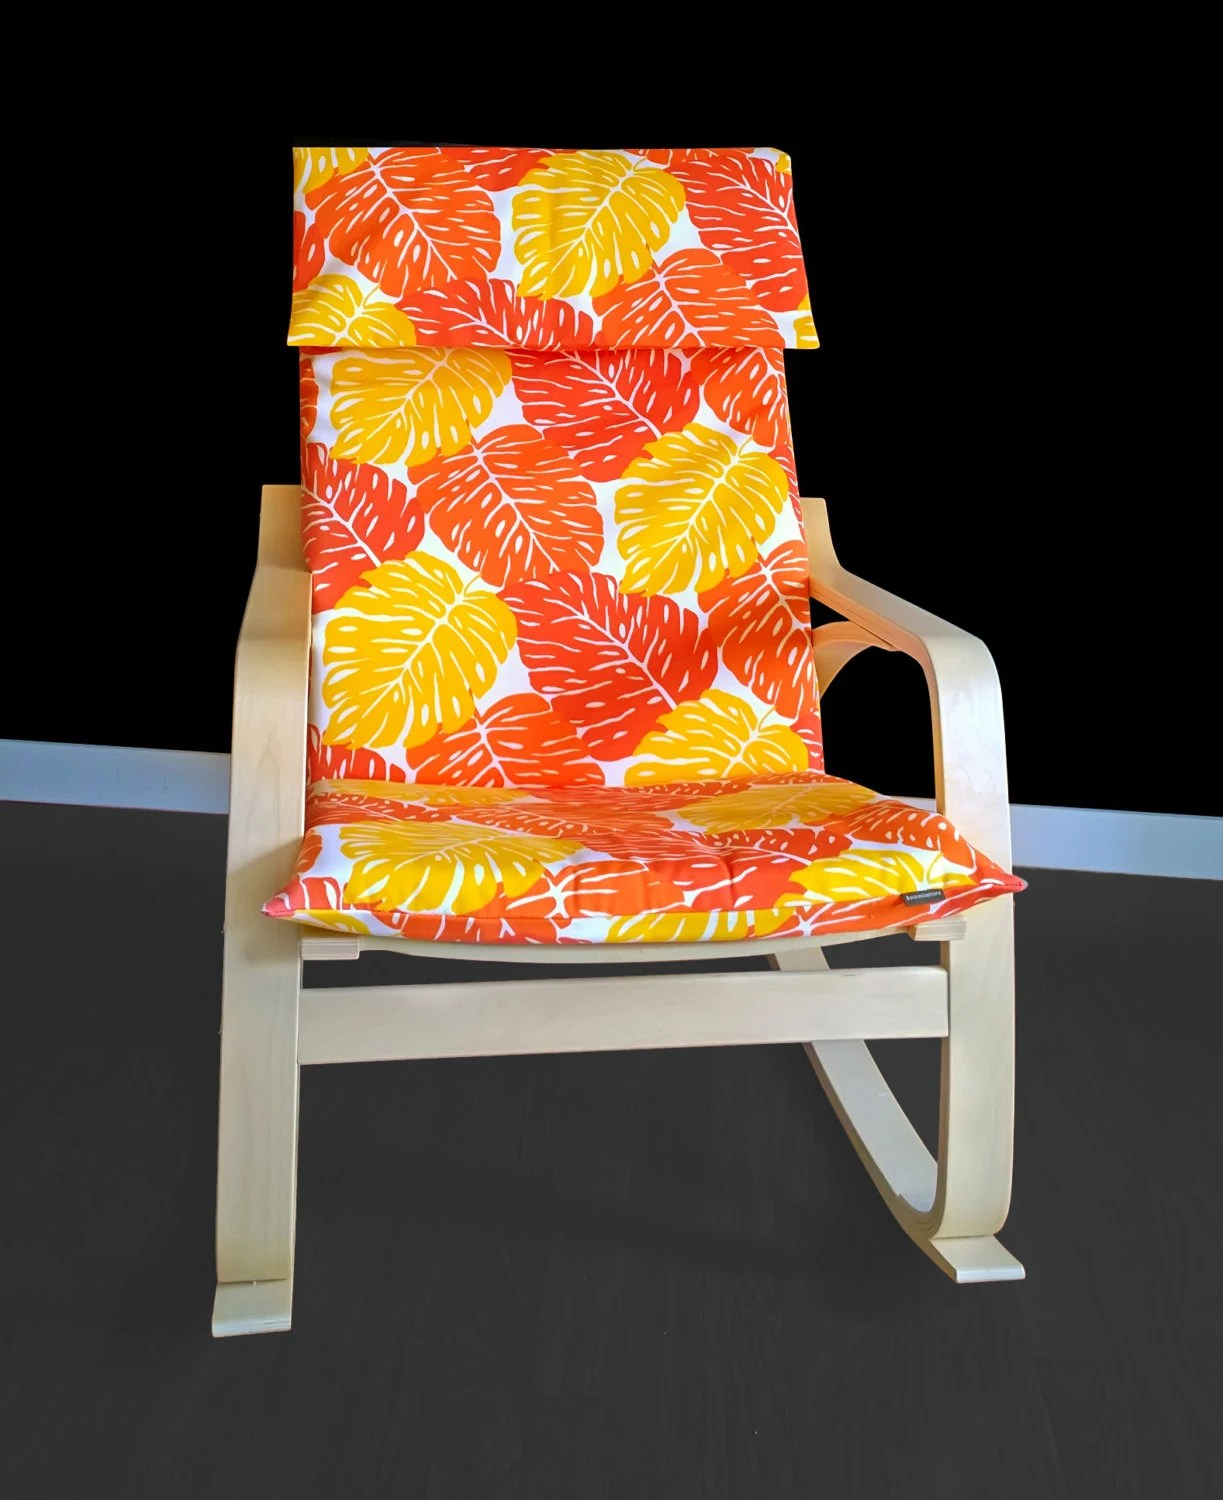 old ikea chair covers portable pedicure chairs orange leaves poang cover leaf seat